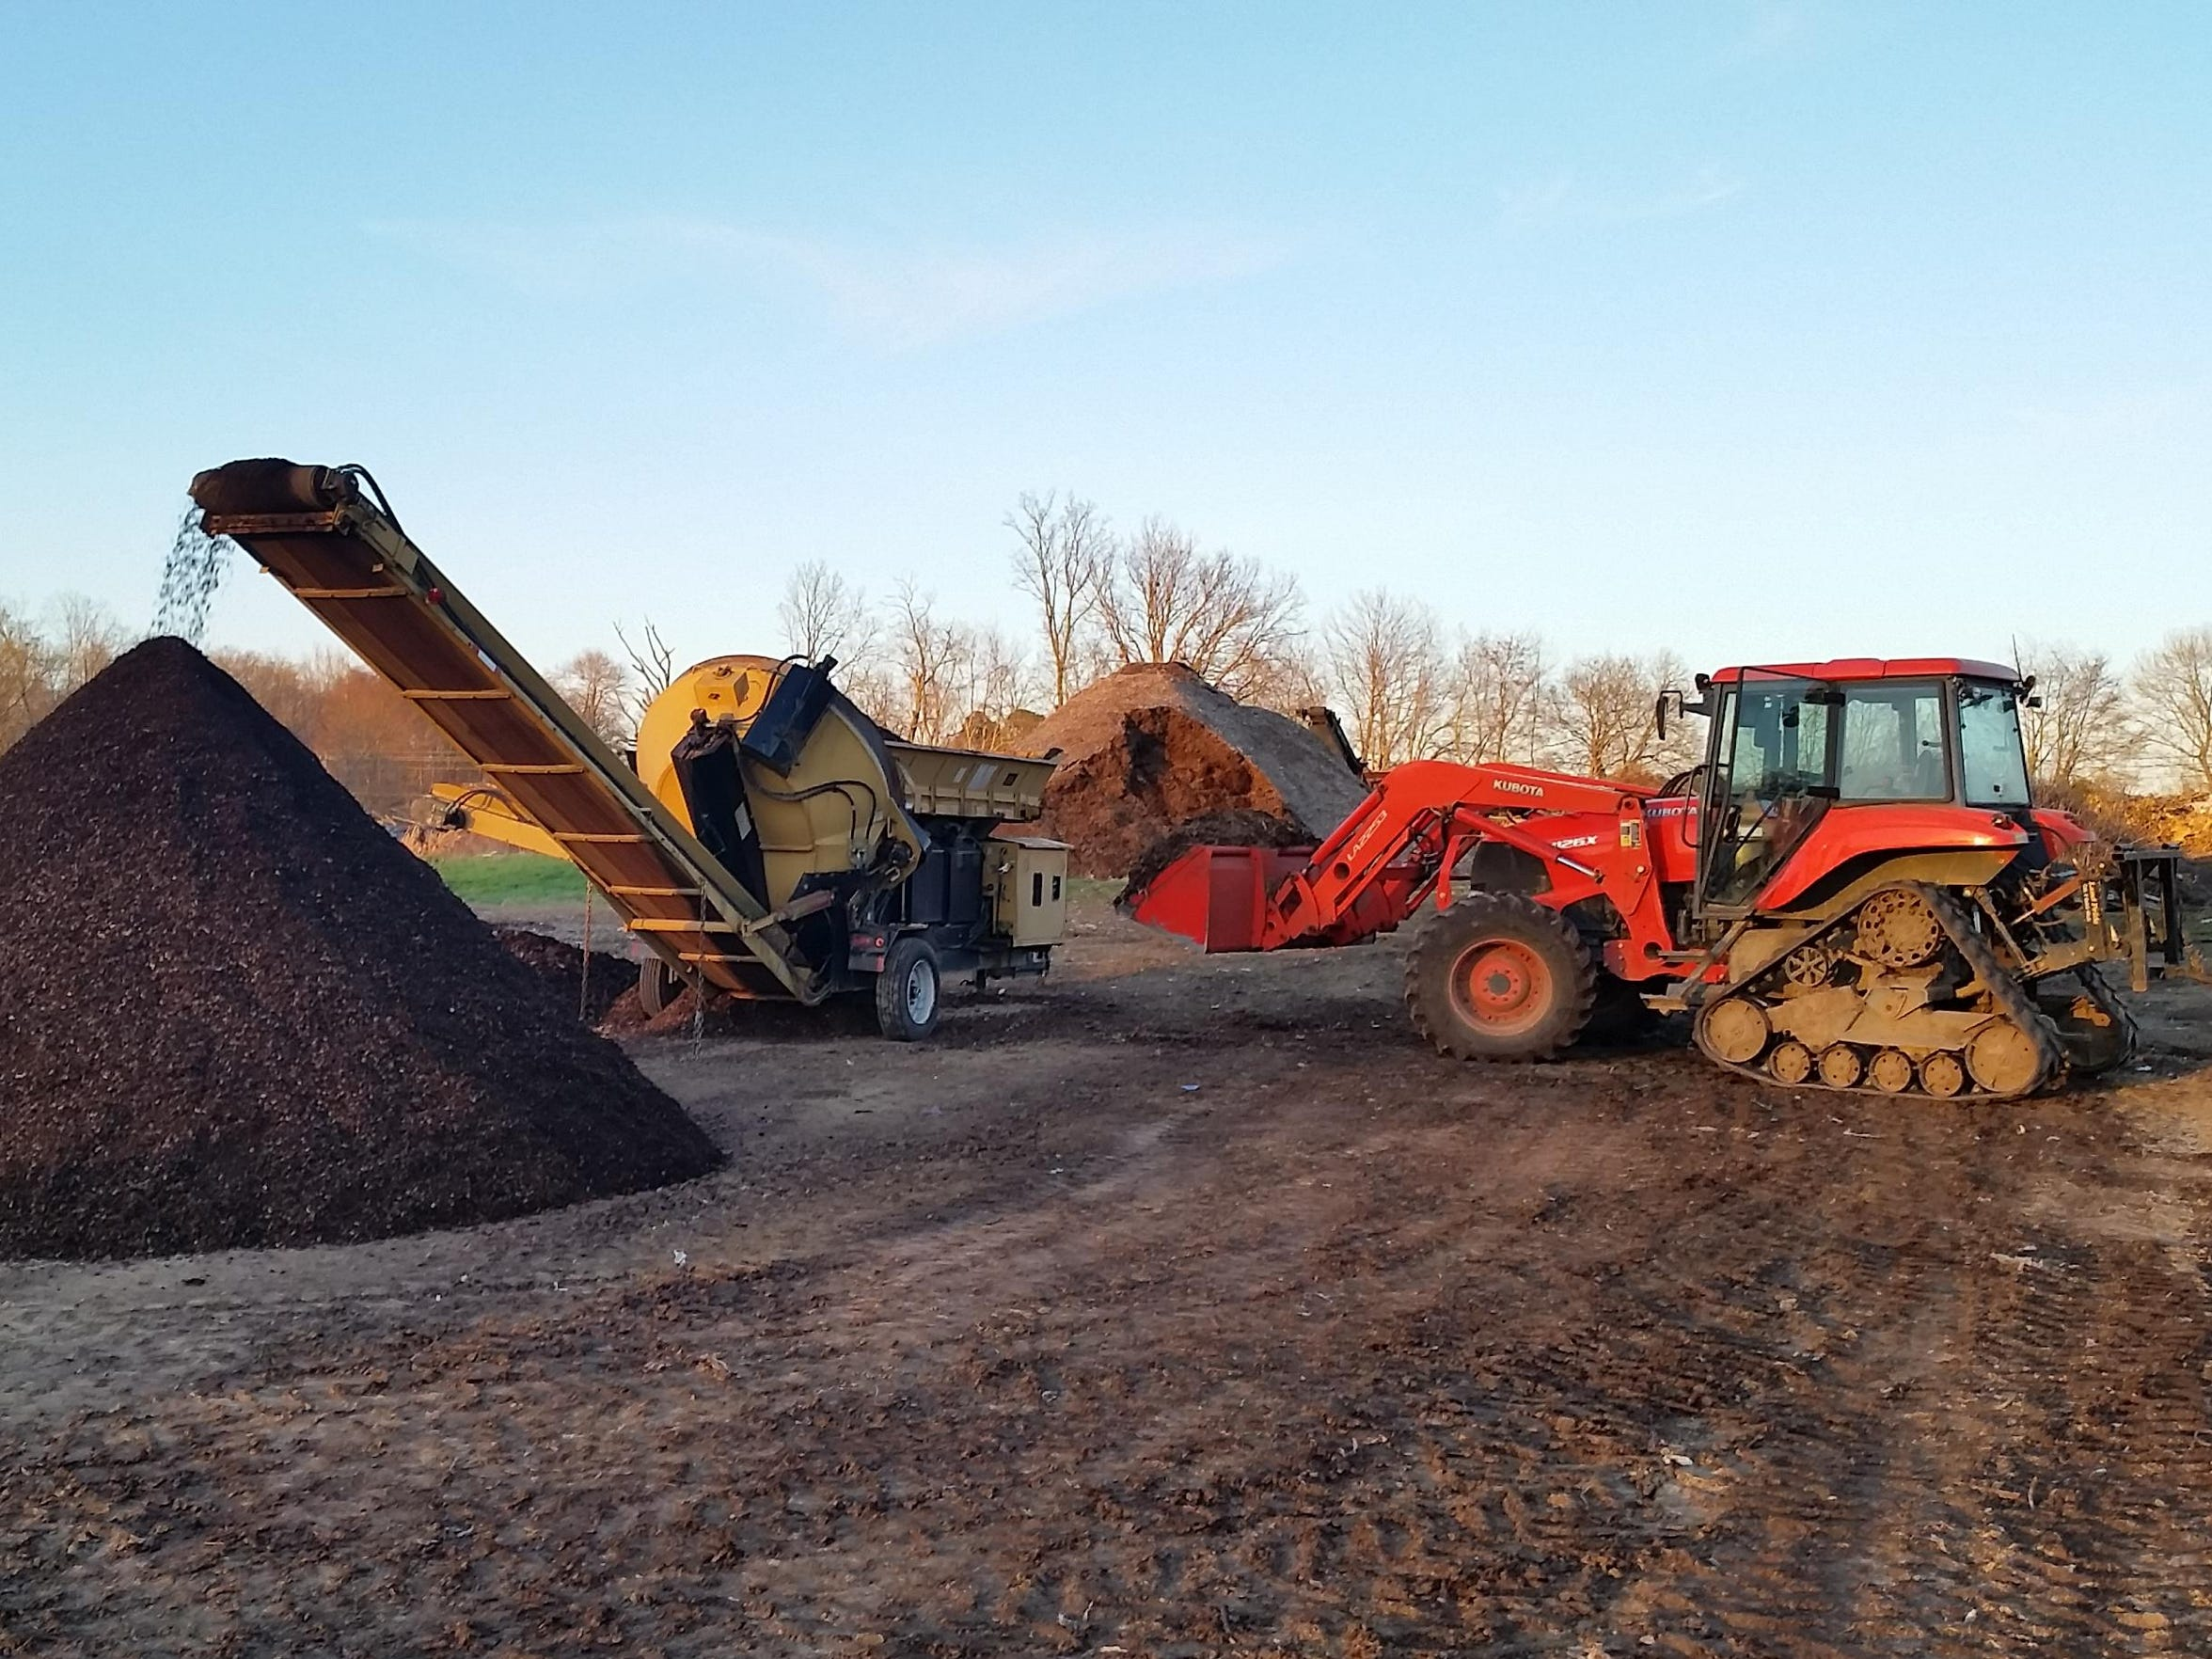 The Compost Company processes organic waste to make